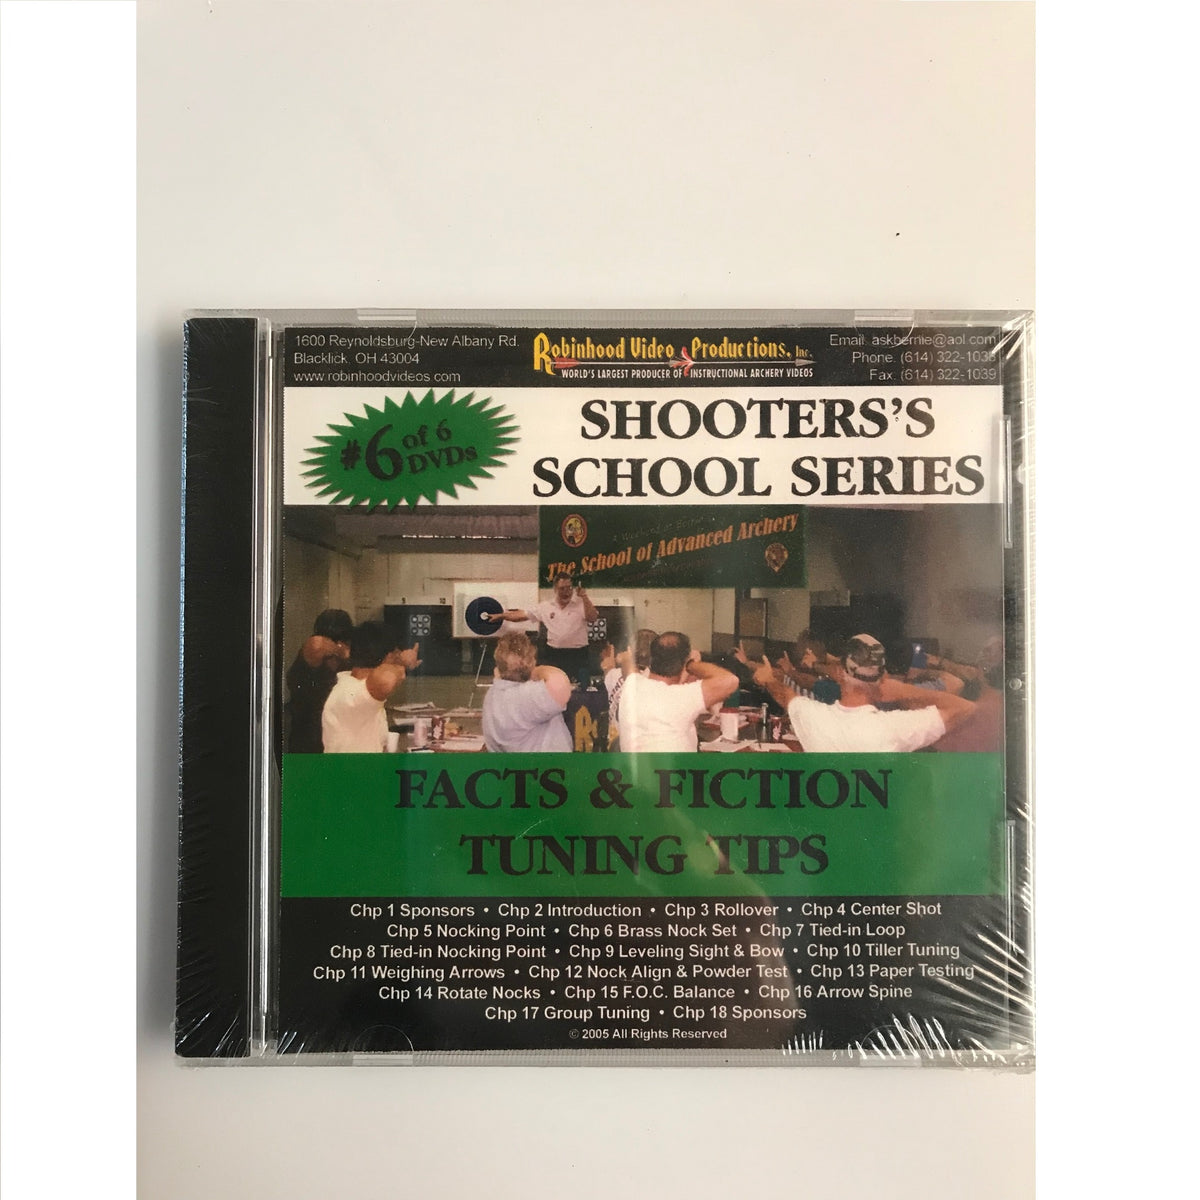 Shooter School Series DVD #6